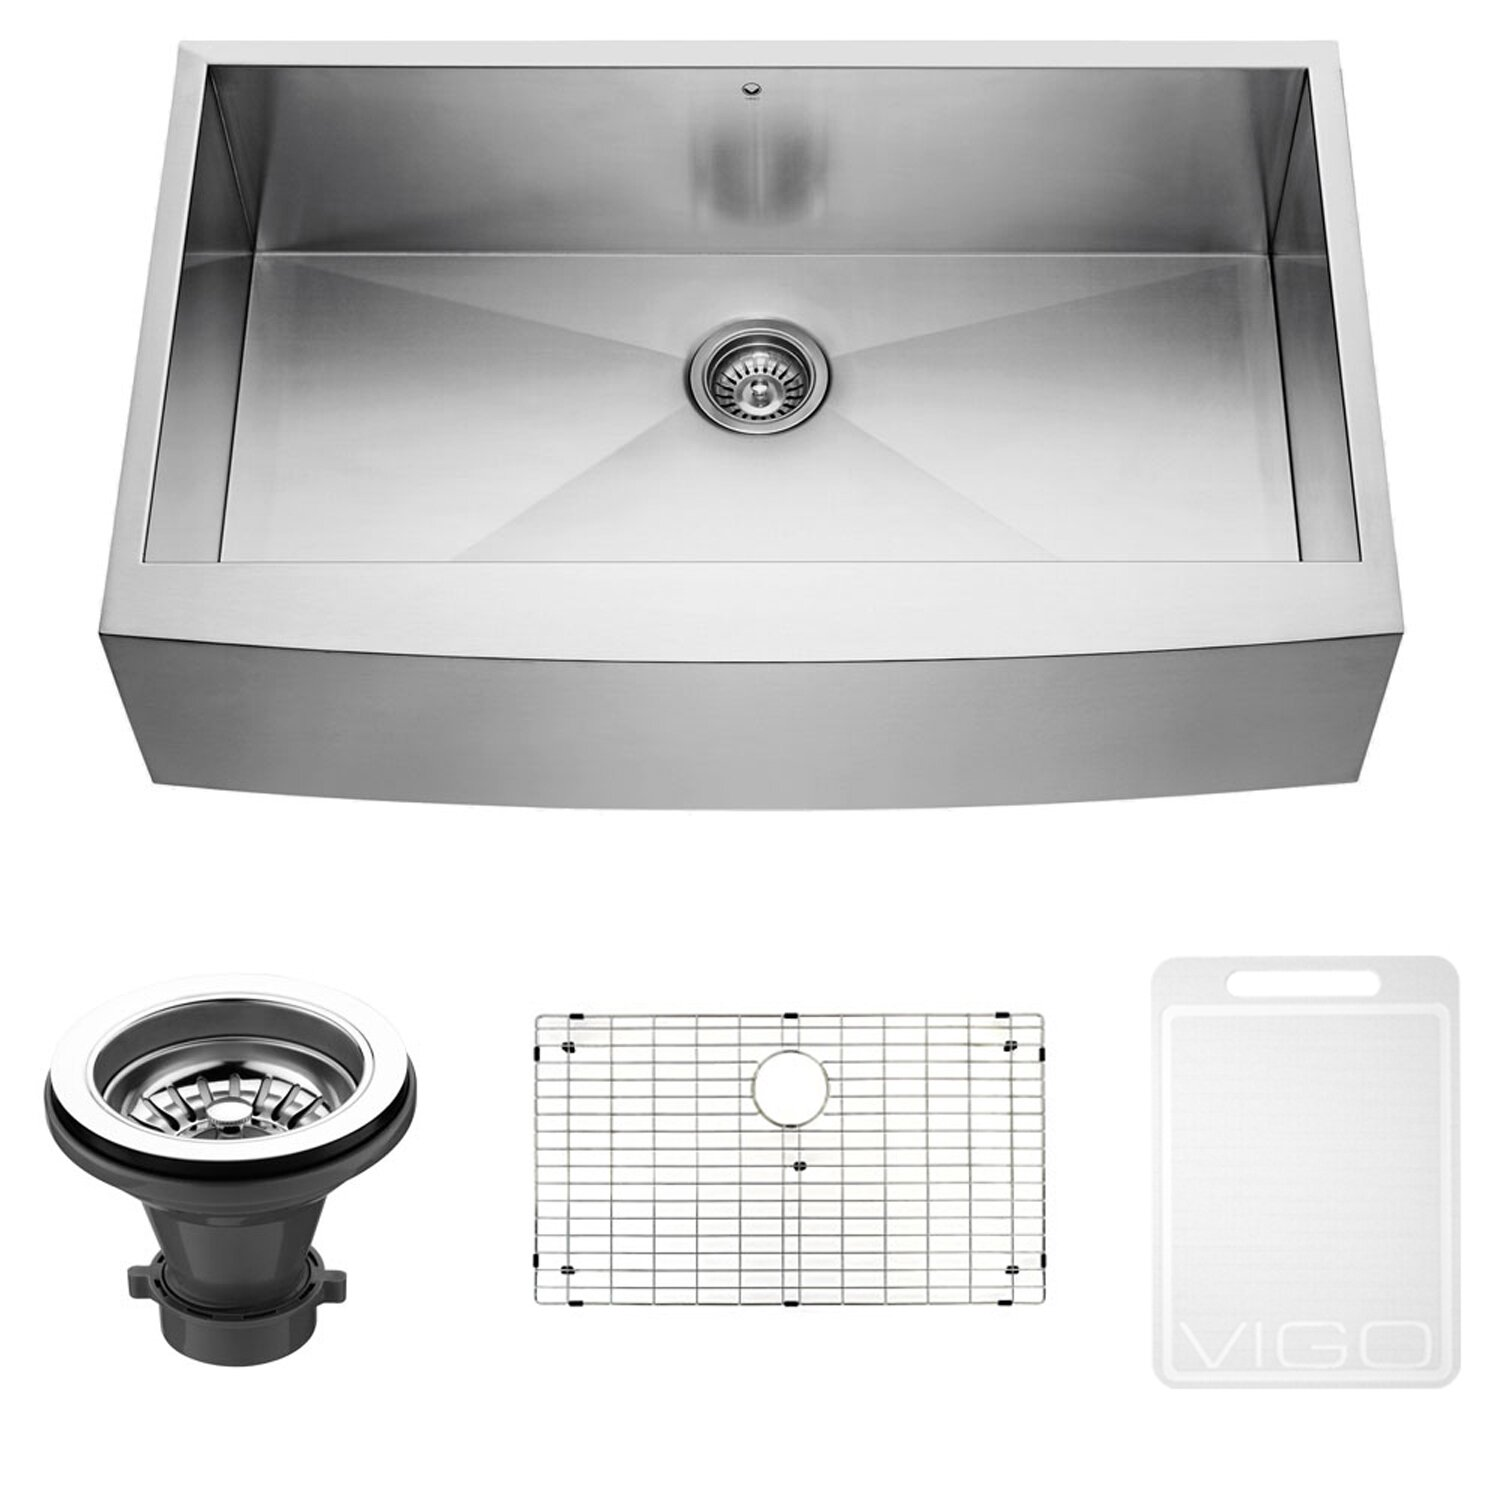 Vigo 36 inch Farmhouse Apron Single Bowl 16 Gauge Stainless Steel Kitchen Sink & Reviews